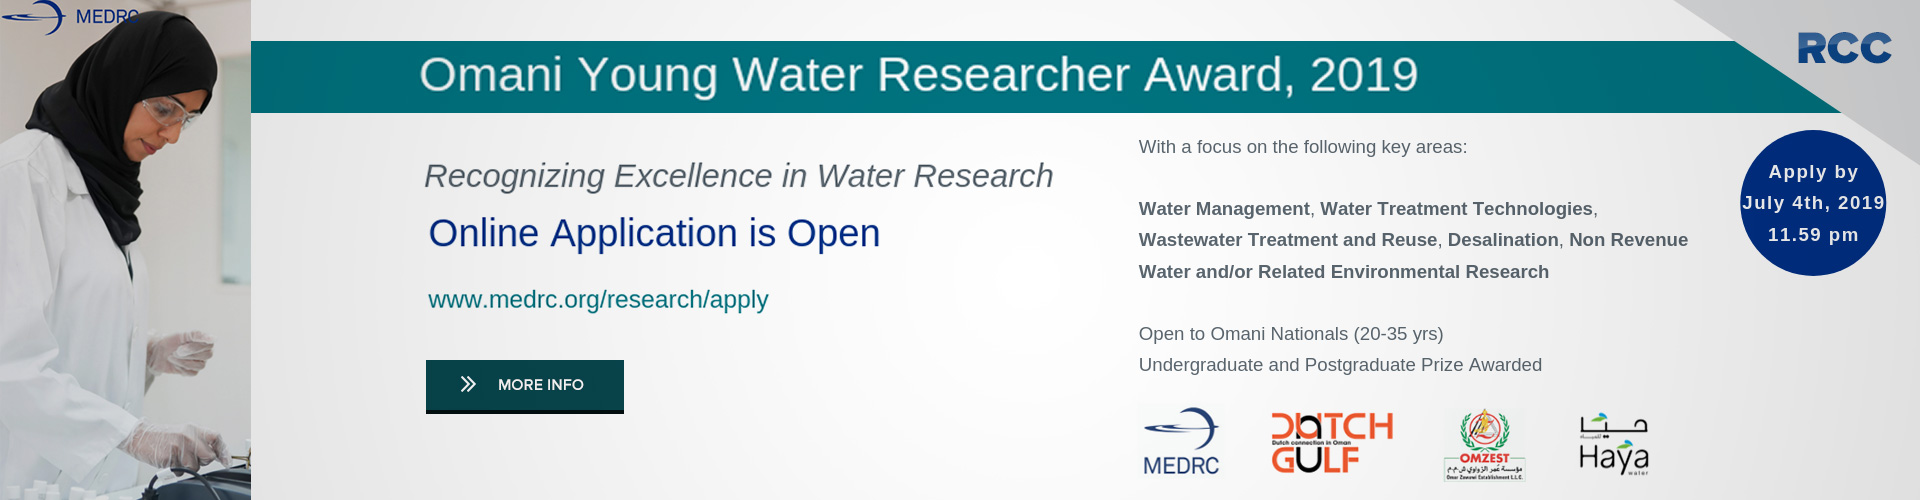 Omani Young Water Researchers Award 2019